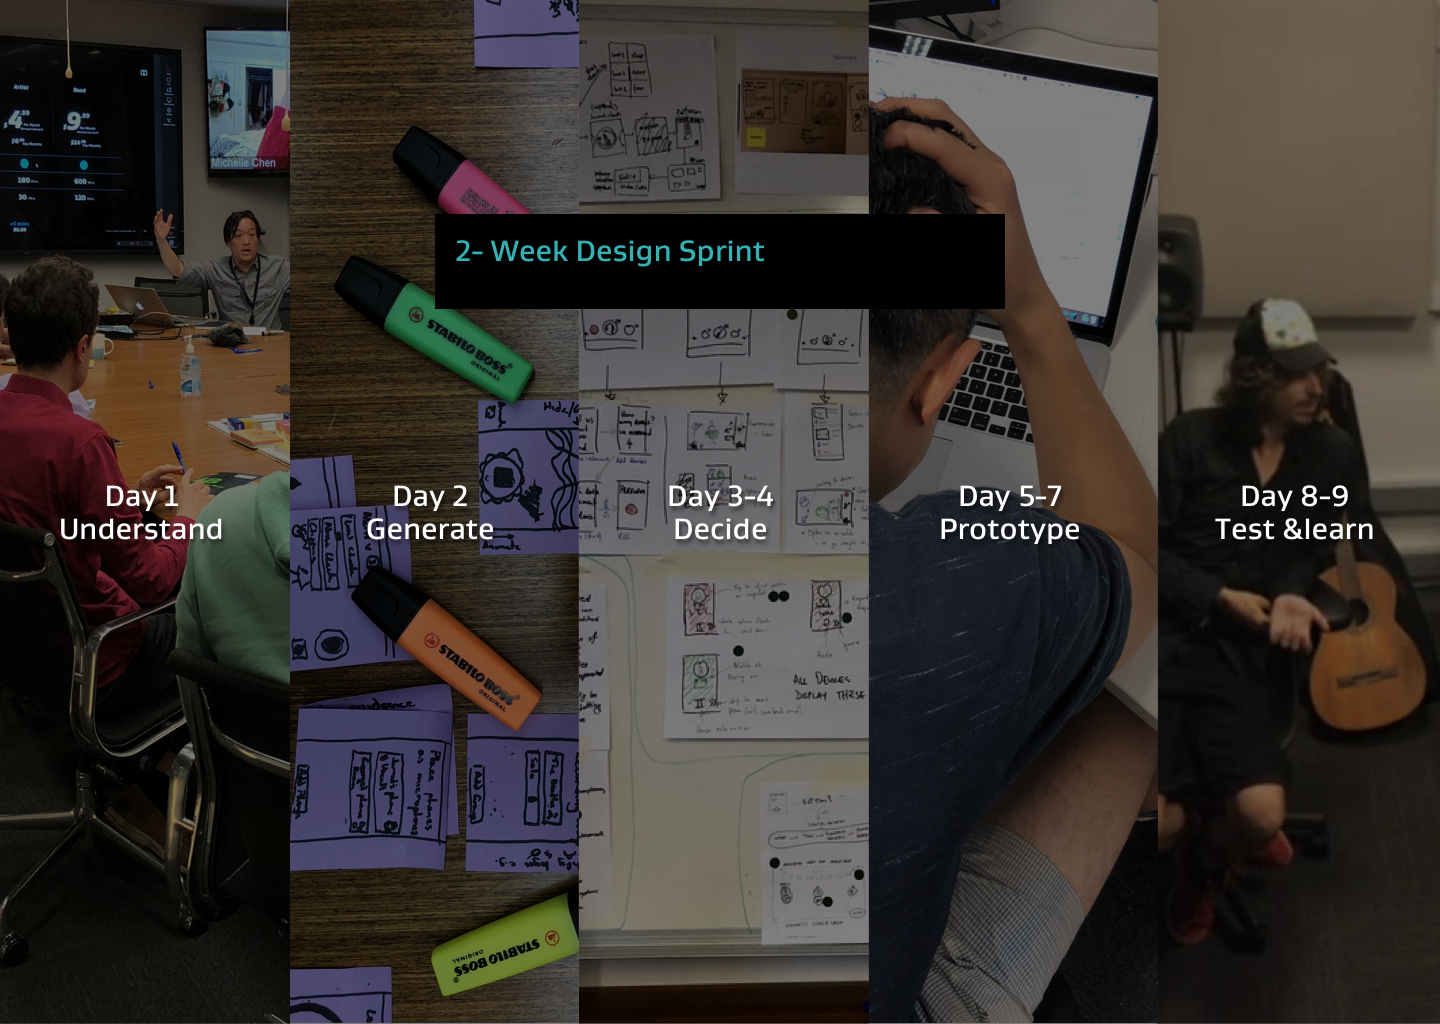 6. Sprint overview